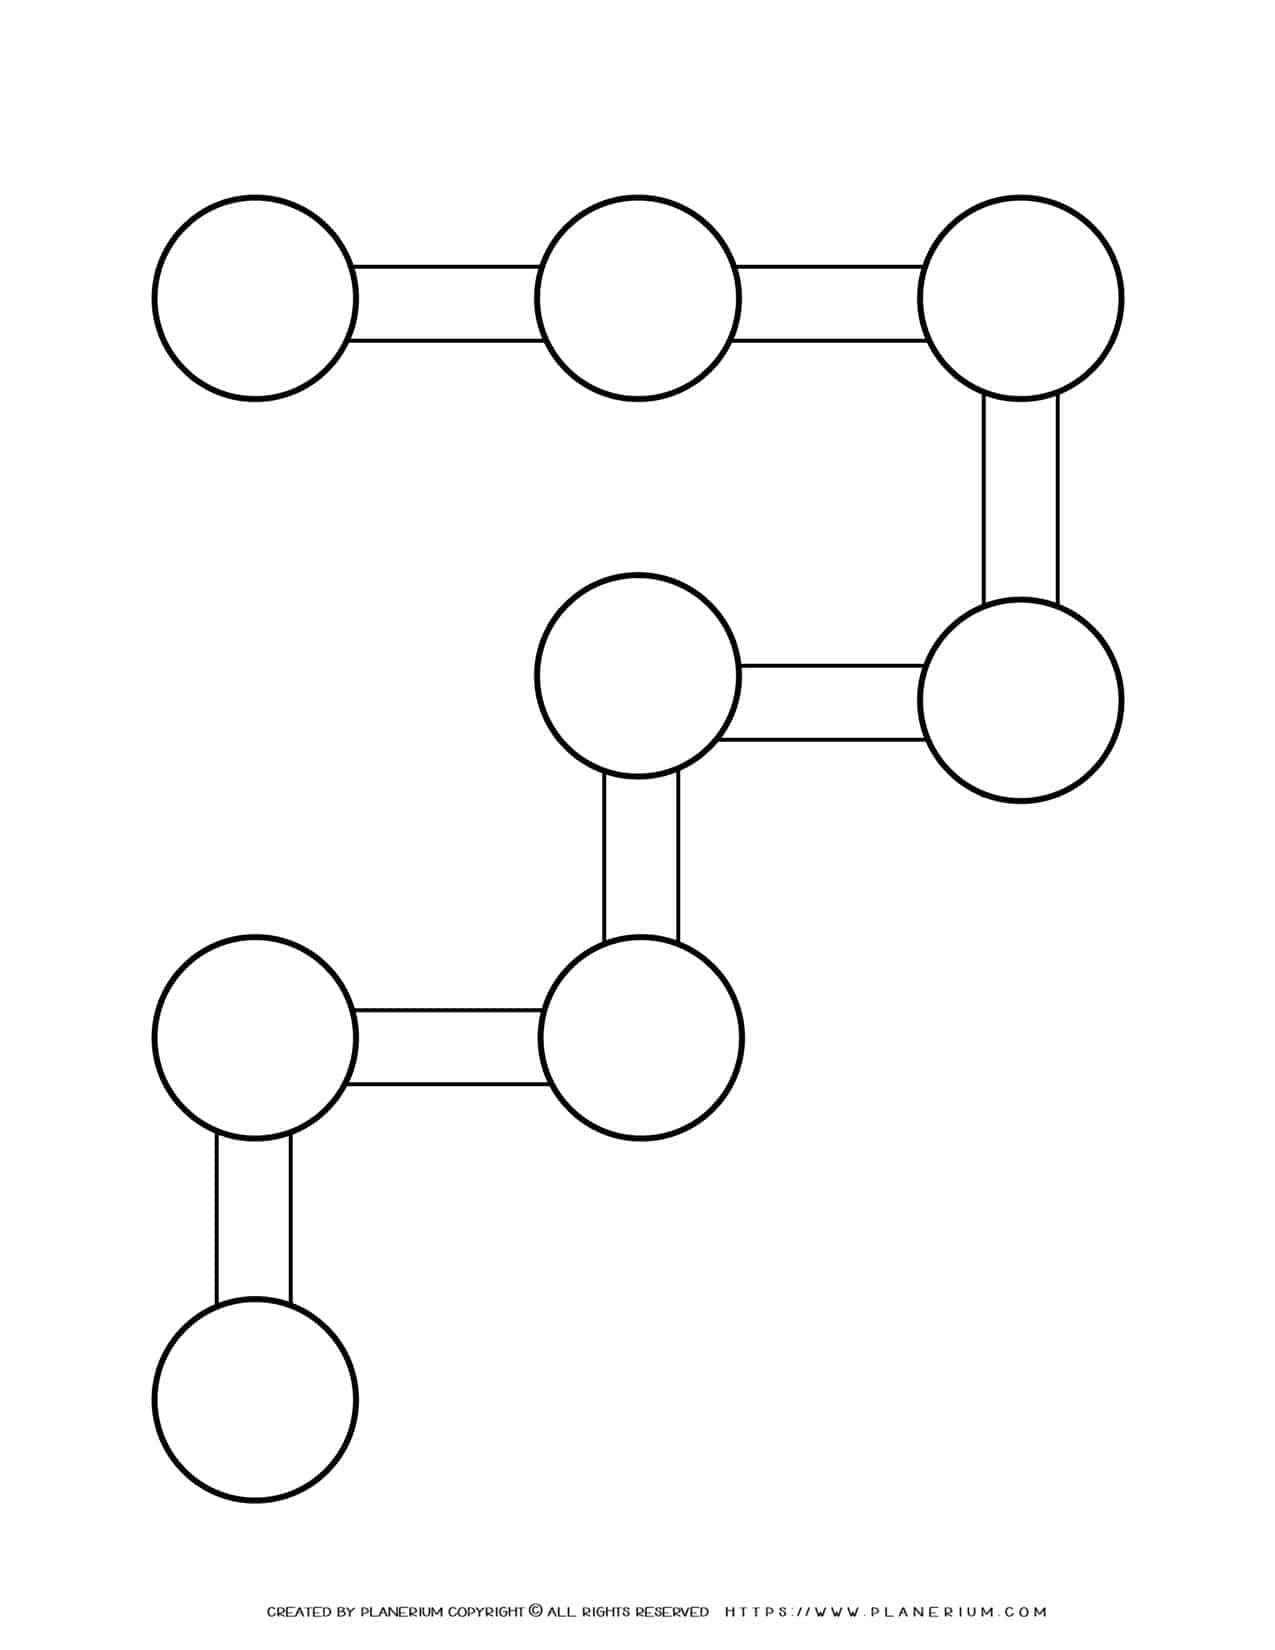 Sequence Chart Template - Eight Circles on R Shape   Planerium